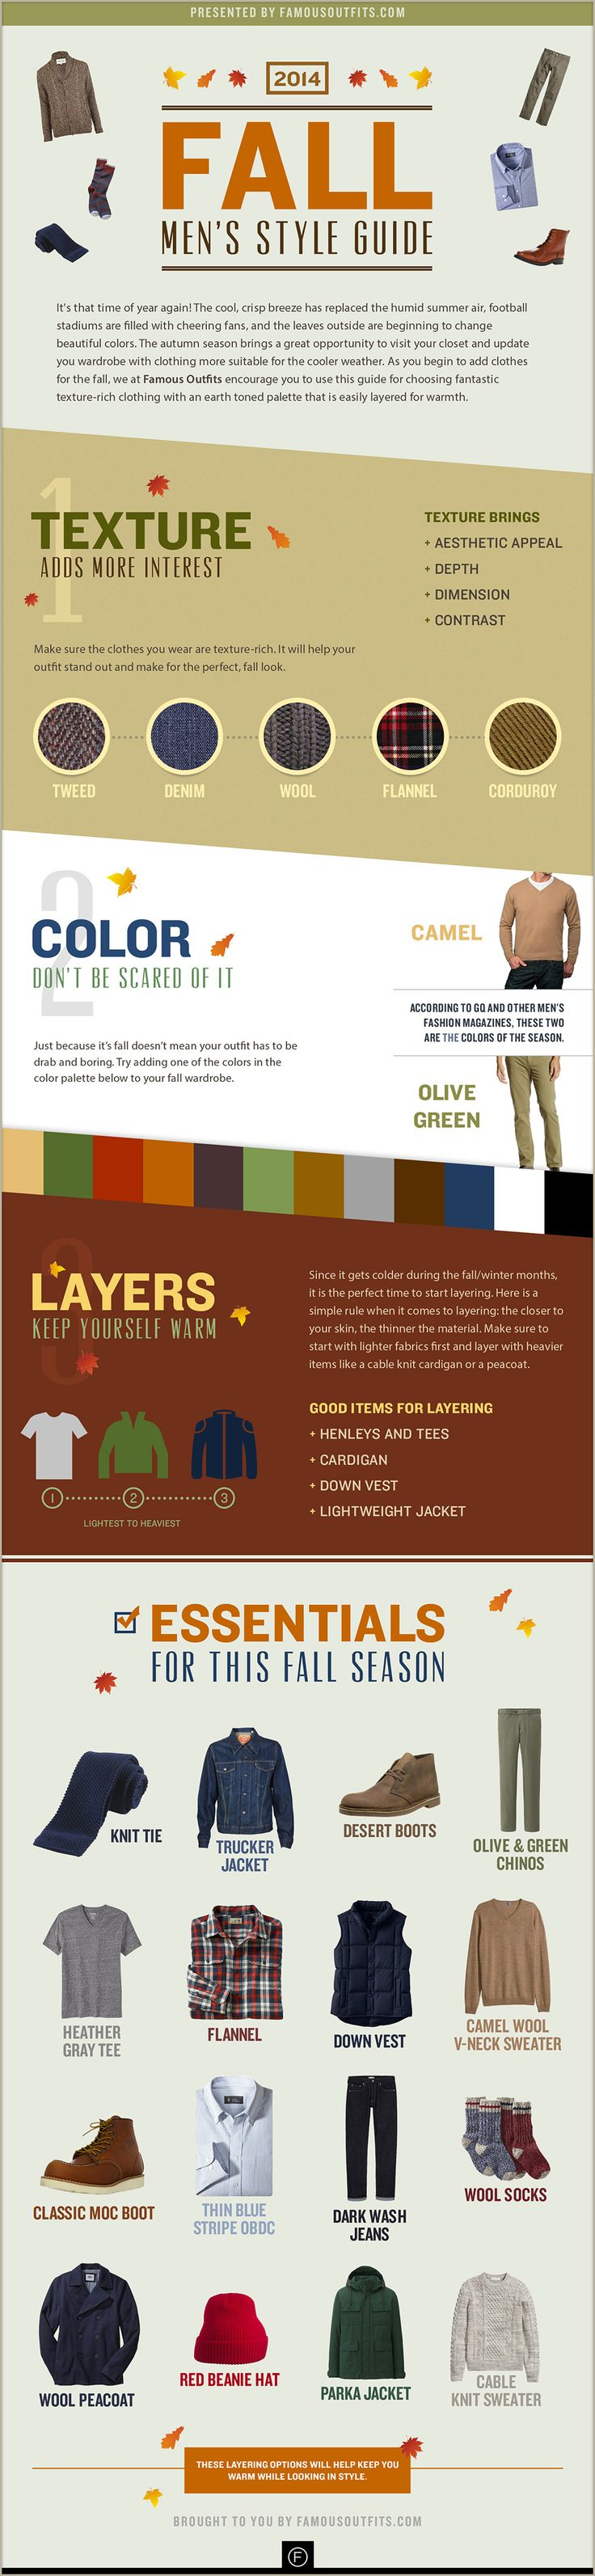 2014 Fall Men's Style Guide - The Fall Style Guide is an interactive lookbook of some of our favorite seasonal clothes. From clothing texture, color, and layering, you'll see why we think fall is the best time to update your wardrobe. Enjoy! #mensfashion